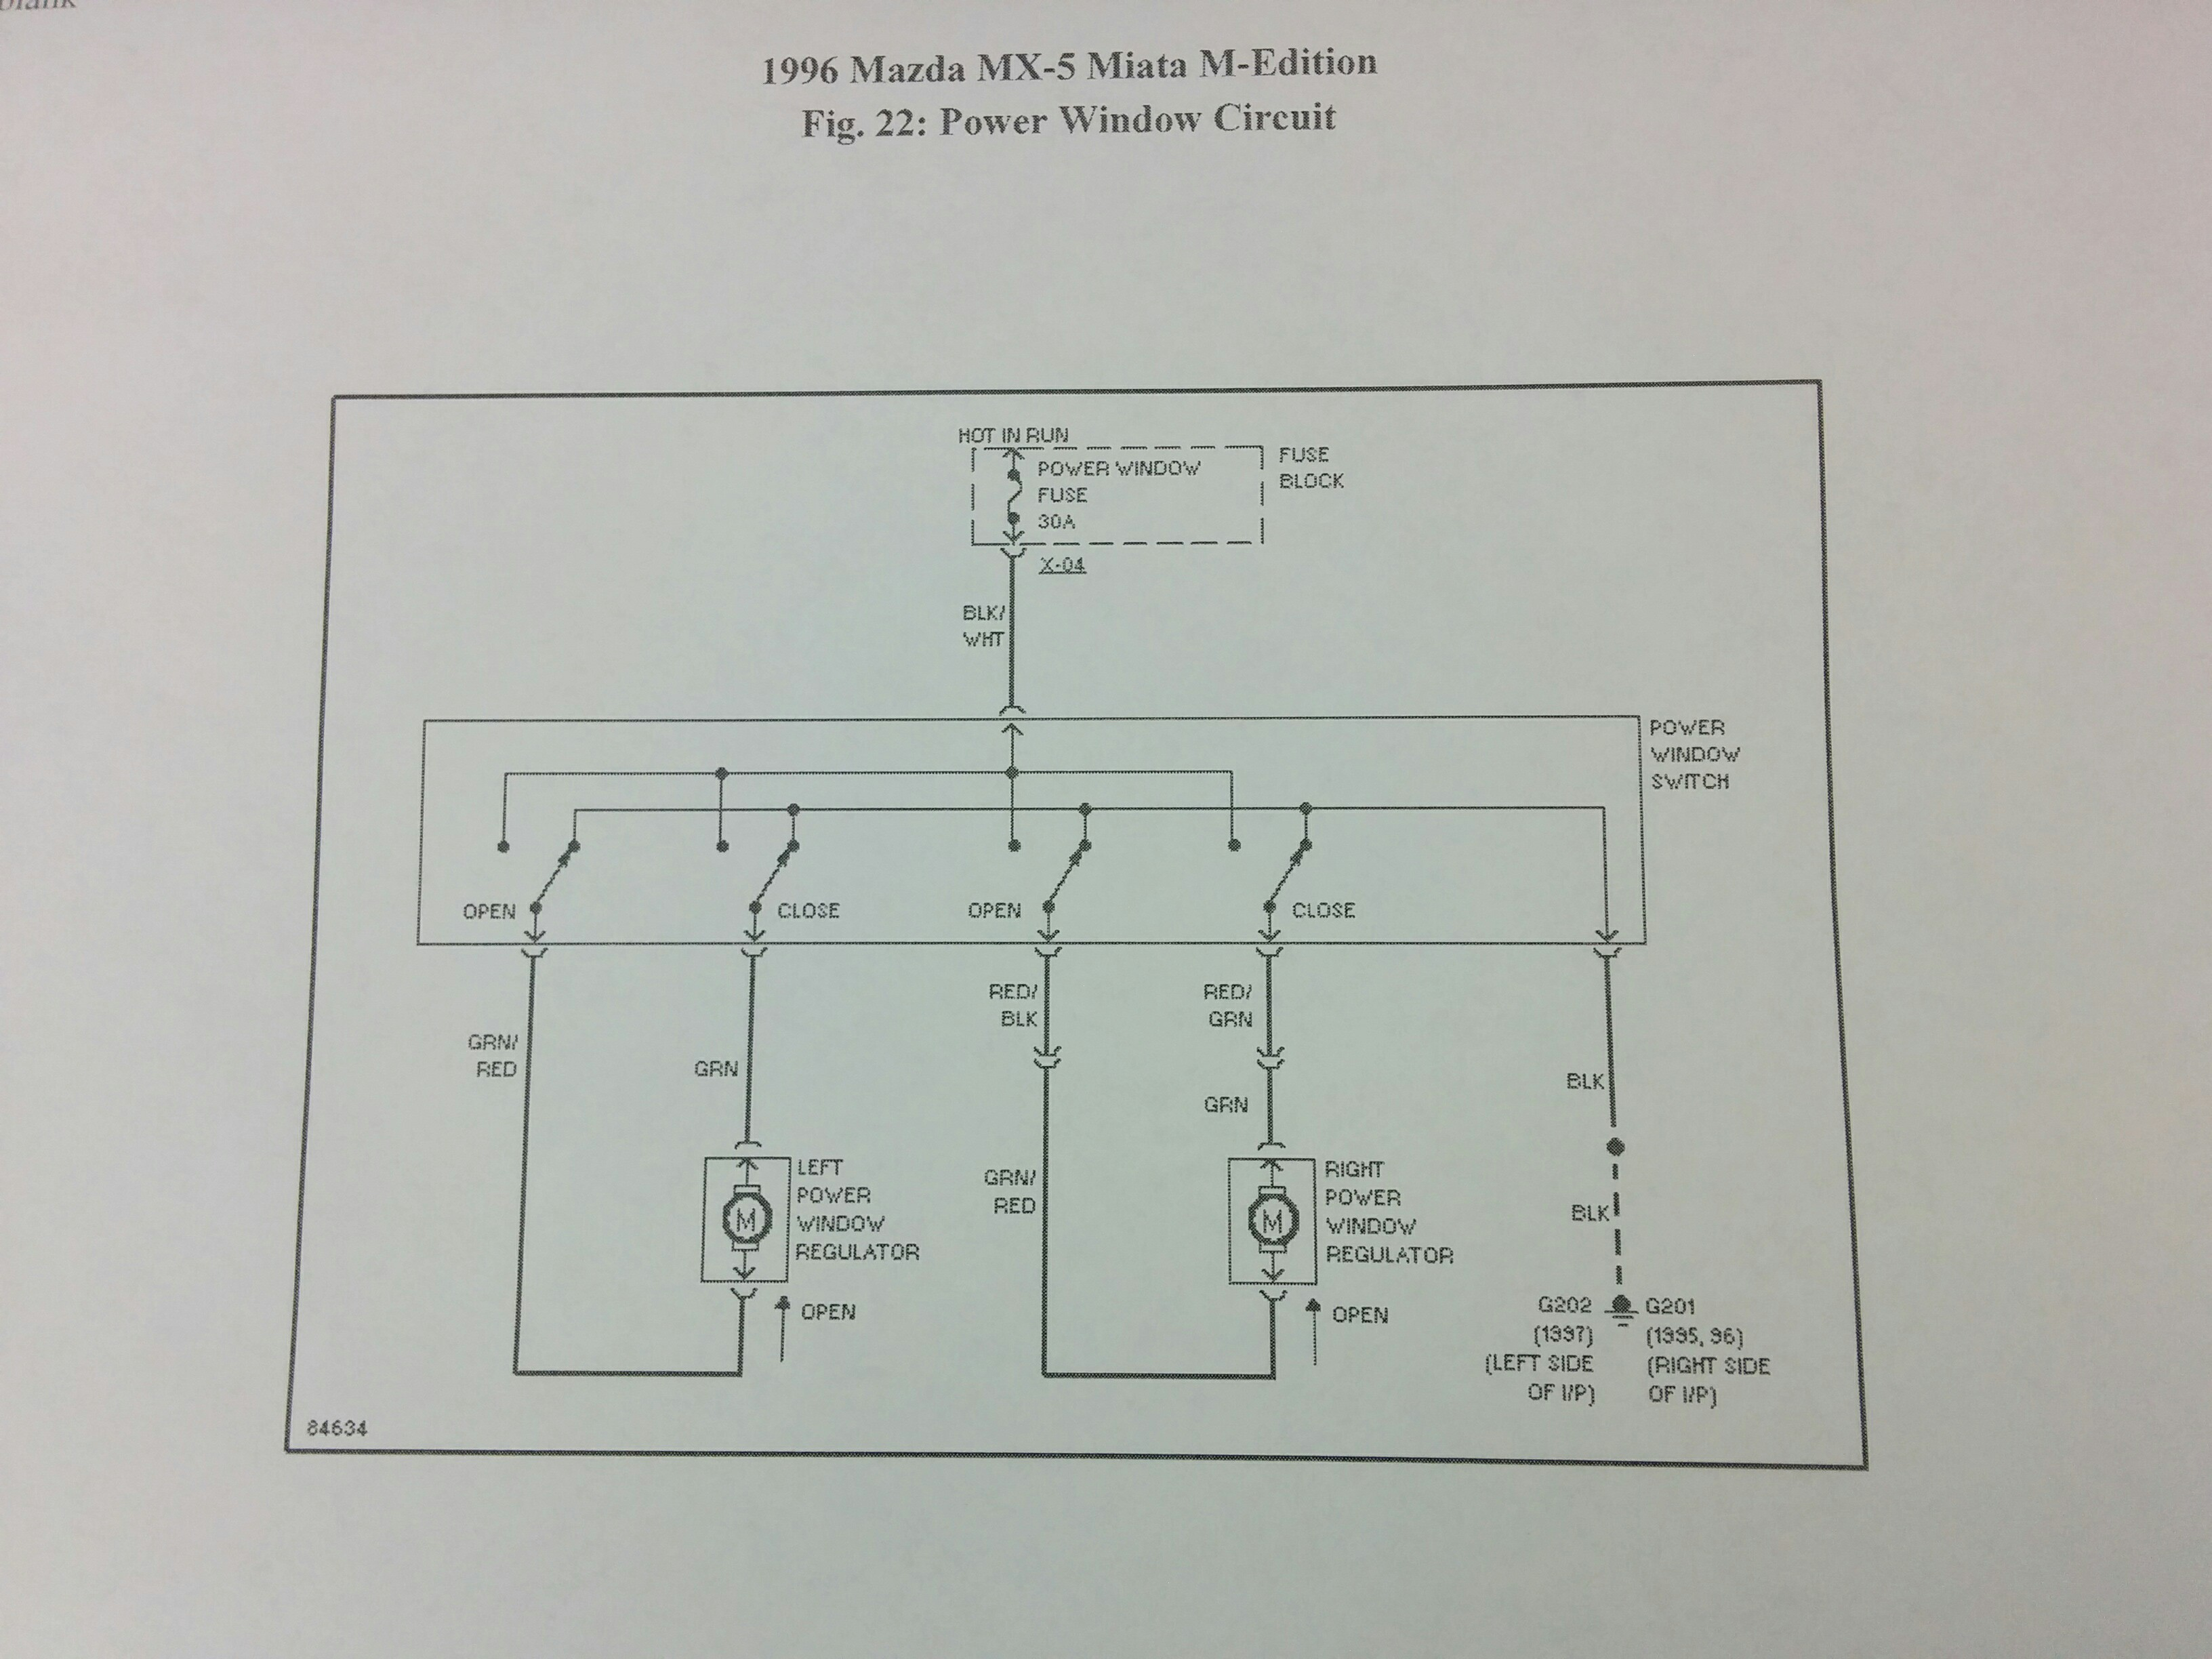 Miata Ignition Switch Wiring Diagram from static-resources.imageservice.cloud